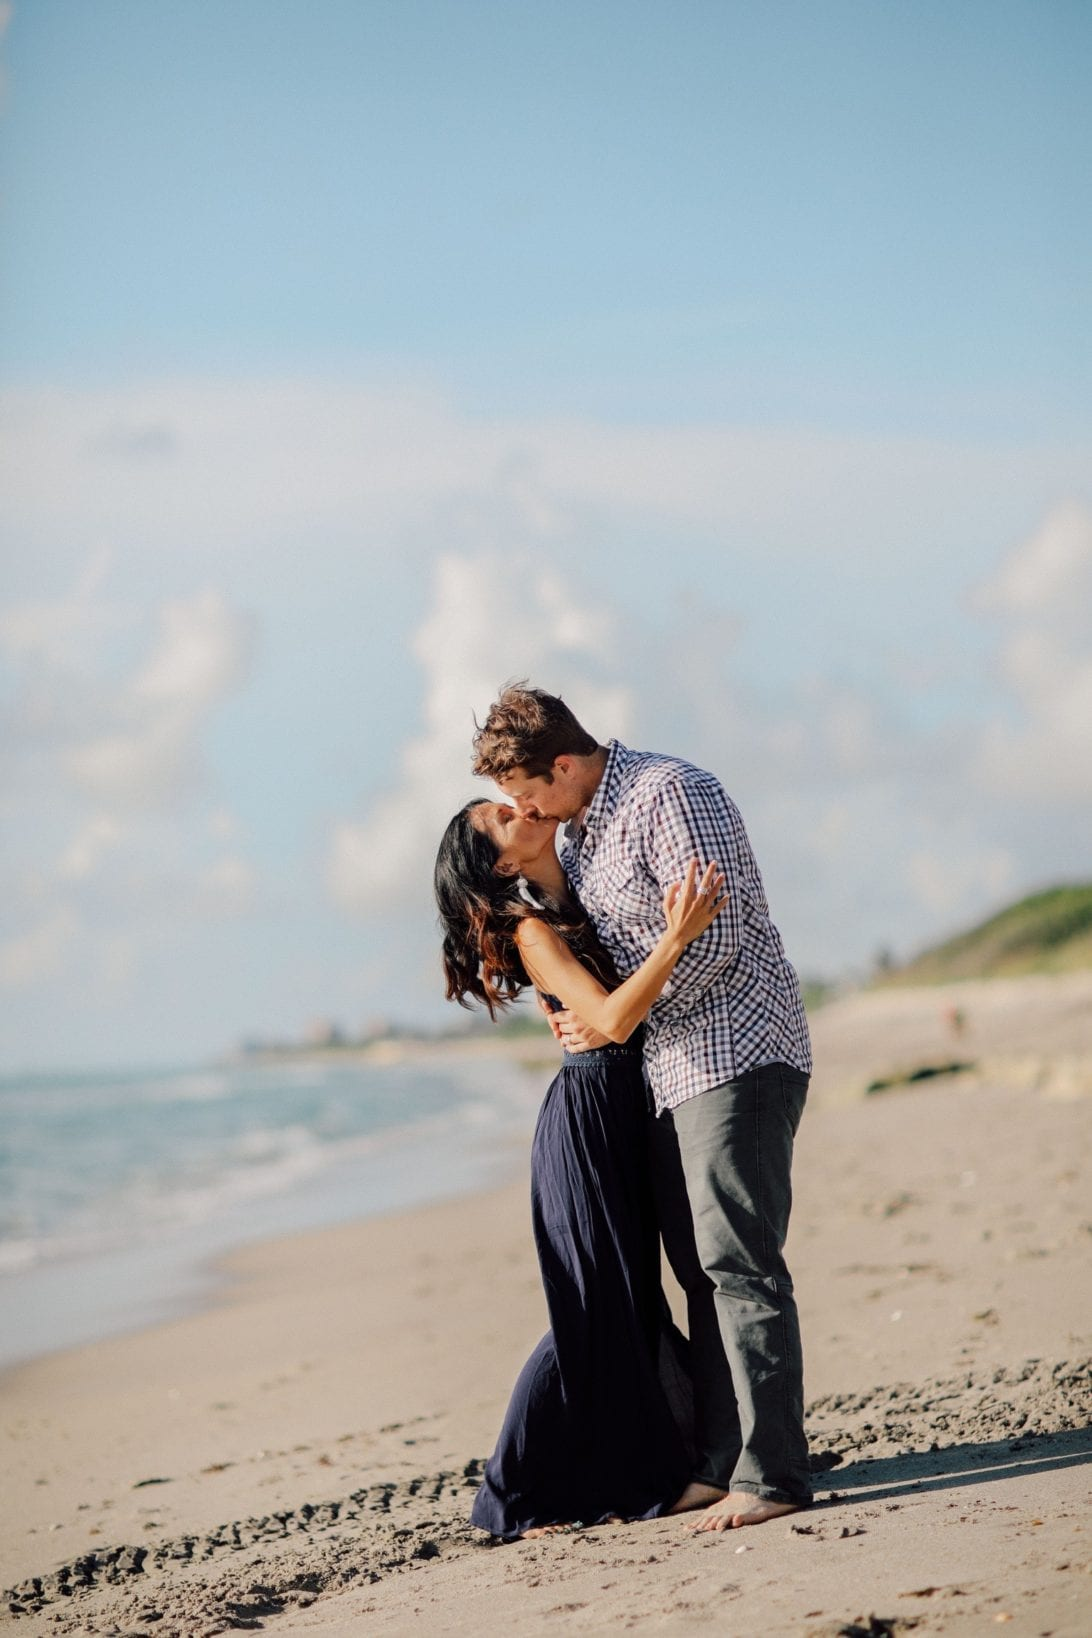 ENGAGEMENT PHOTOS, COUPLE PHOTOS. BEACH PHOTOSHOOT, BEACH ENGAGEMENT, BEACH ANNIVERSARY SHOOT